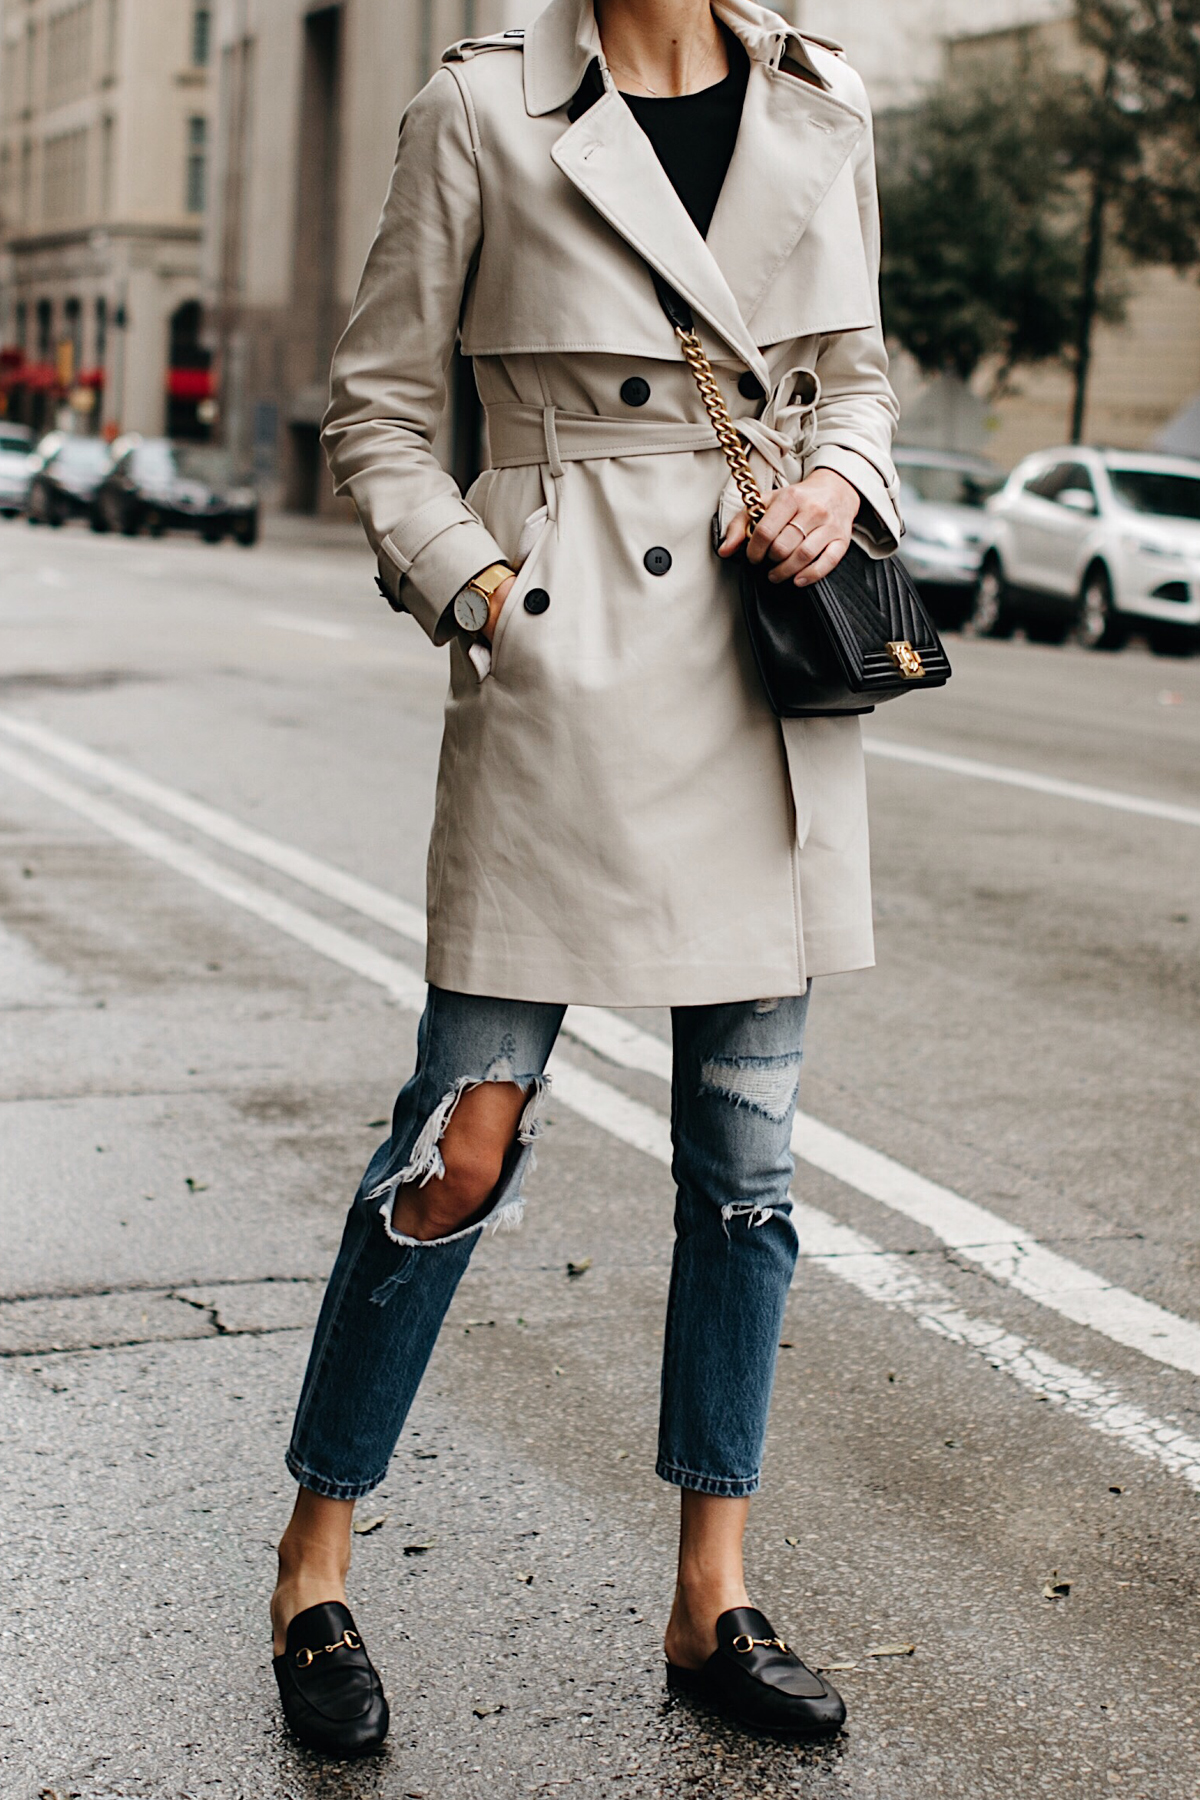 Woman Wearing Club Monaco Trench Coat Levis Ripped Jeans Gucci Black Princetown Mules Chanel Black Boy Bag Chevron Fashion Jackson Dallas Blogger Fashion Blogger Street Style